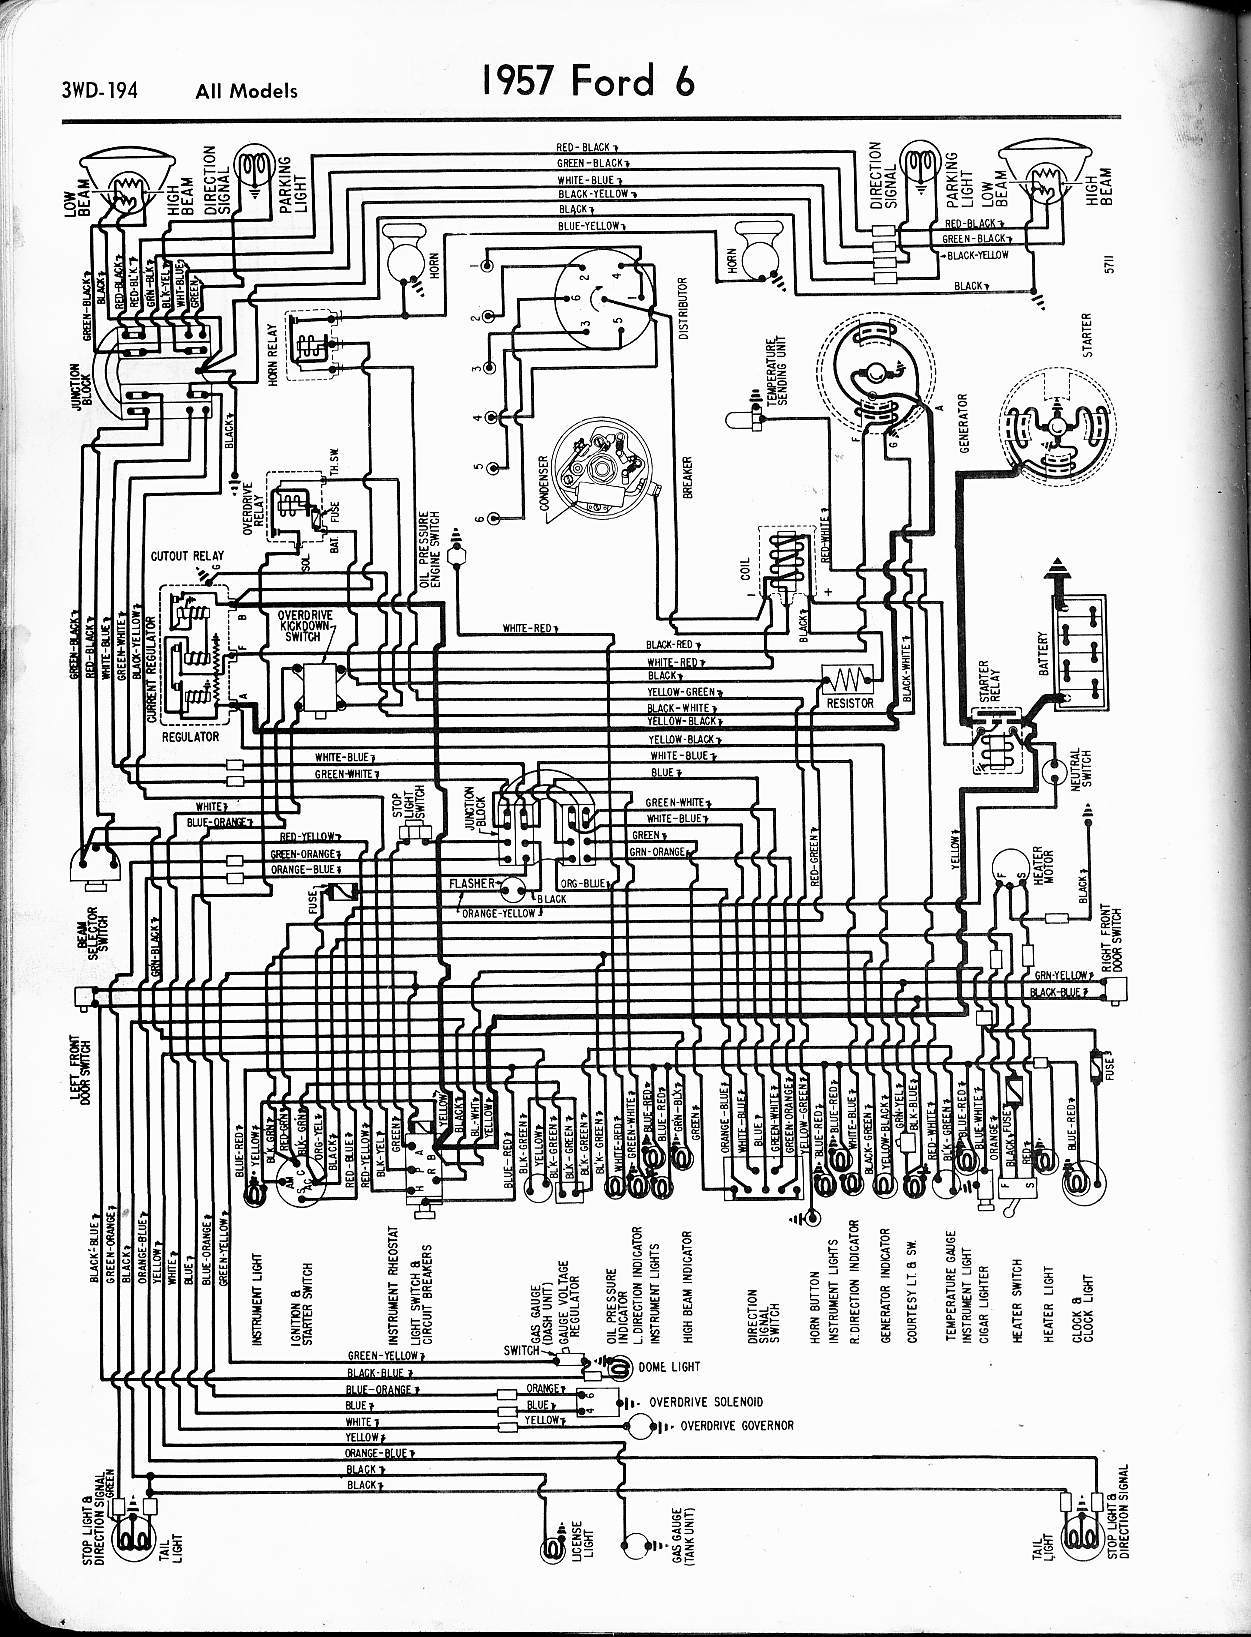 80 2010_07_23_013626_1957_ford_wiring_451fe1d3aafe571893763e4bcbb92521b2870e9d 1957 ford truck wiring diagram ford truck enthusiasts forums ford wiring schematics at virtualis.co